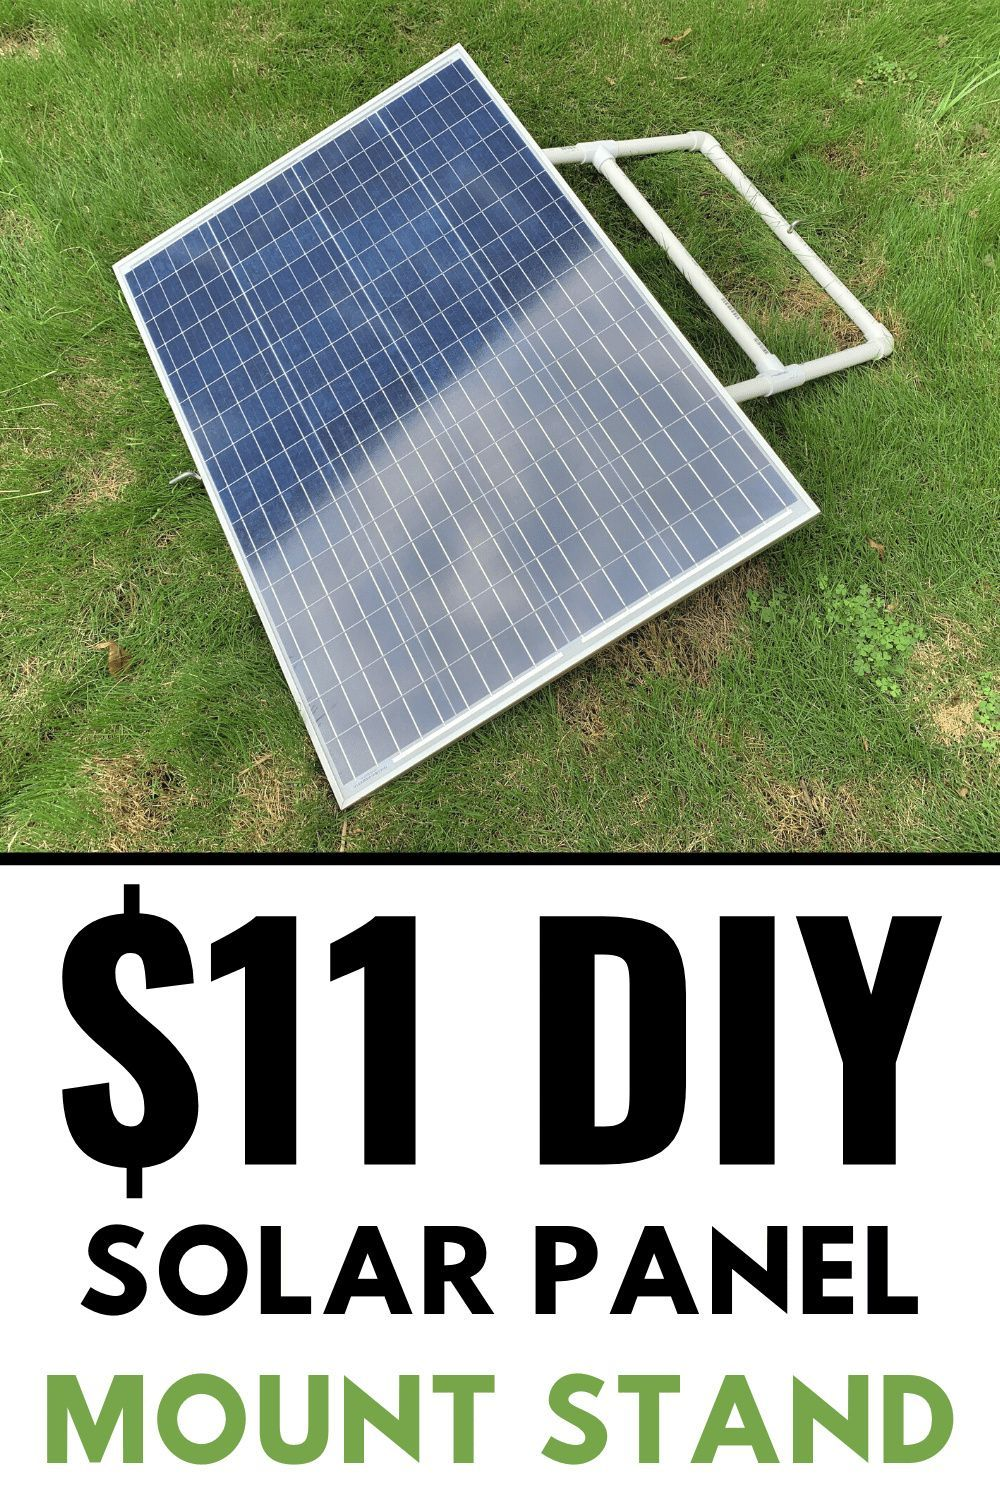 11 Diy Adjustable Solar Panel Mount In 2020 Solar Panel Mounts Solar Panels Diy Solar Panel